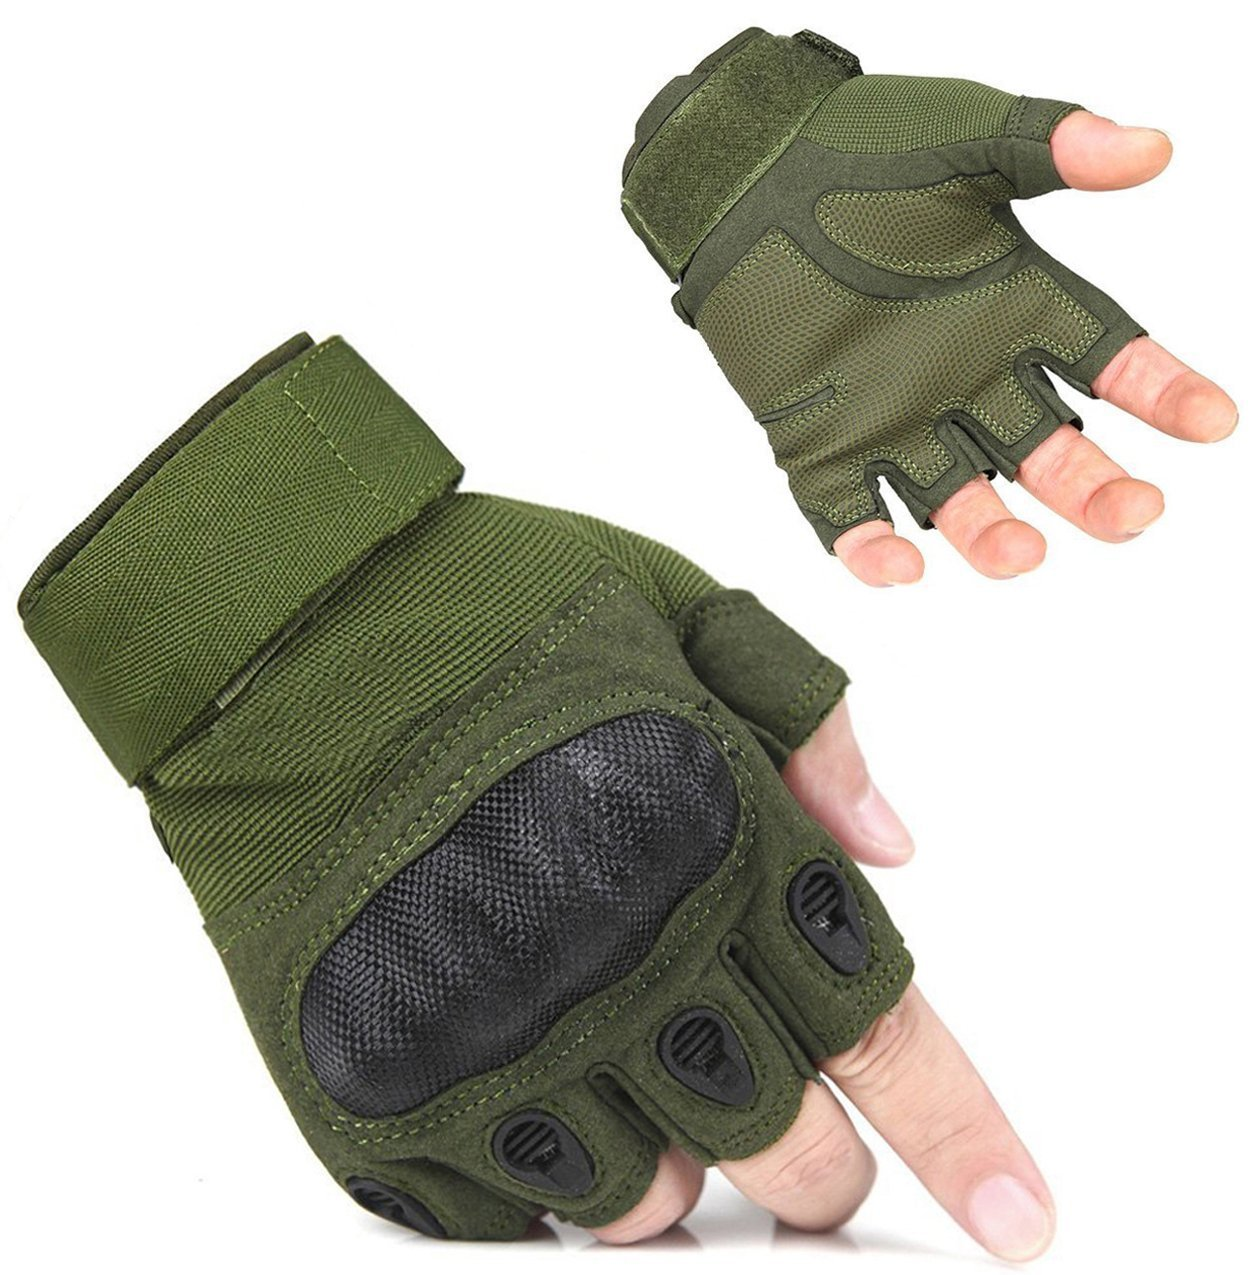 ADOGO Fingerless Cycling Gloves Outdoor Sports Light Gloves